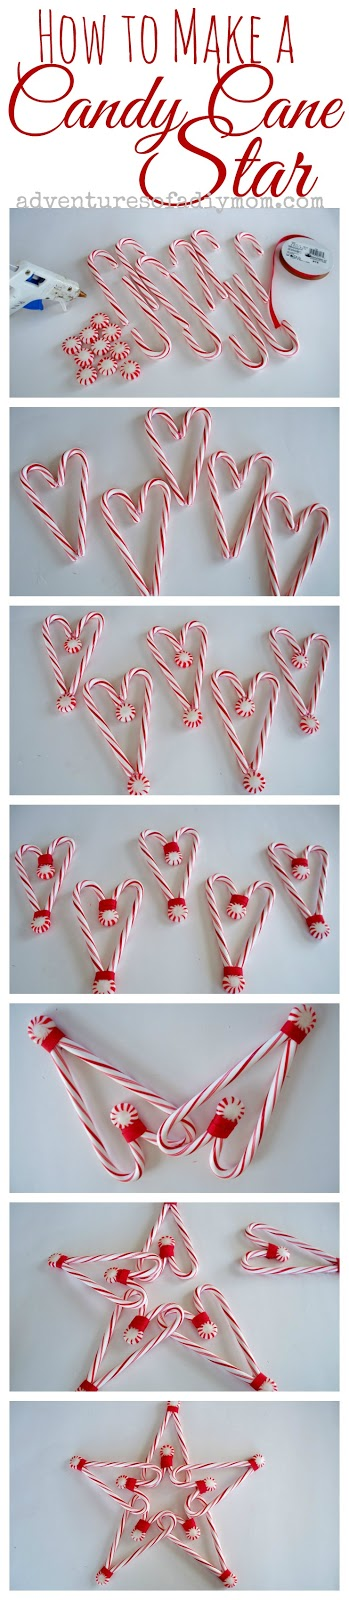 How to Make a Candy Cane Star